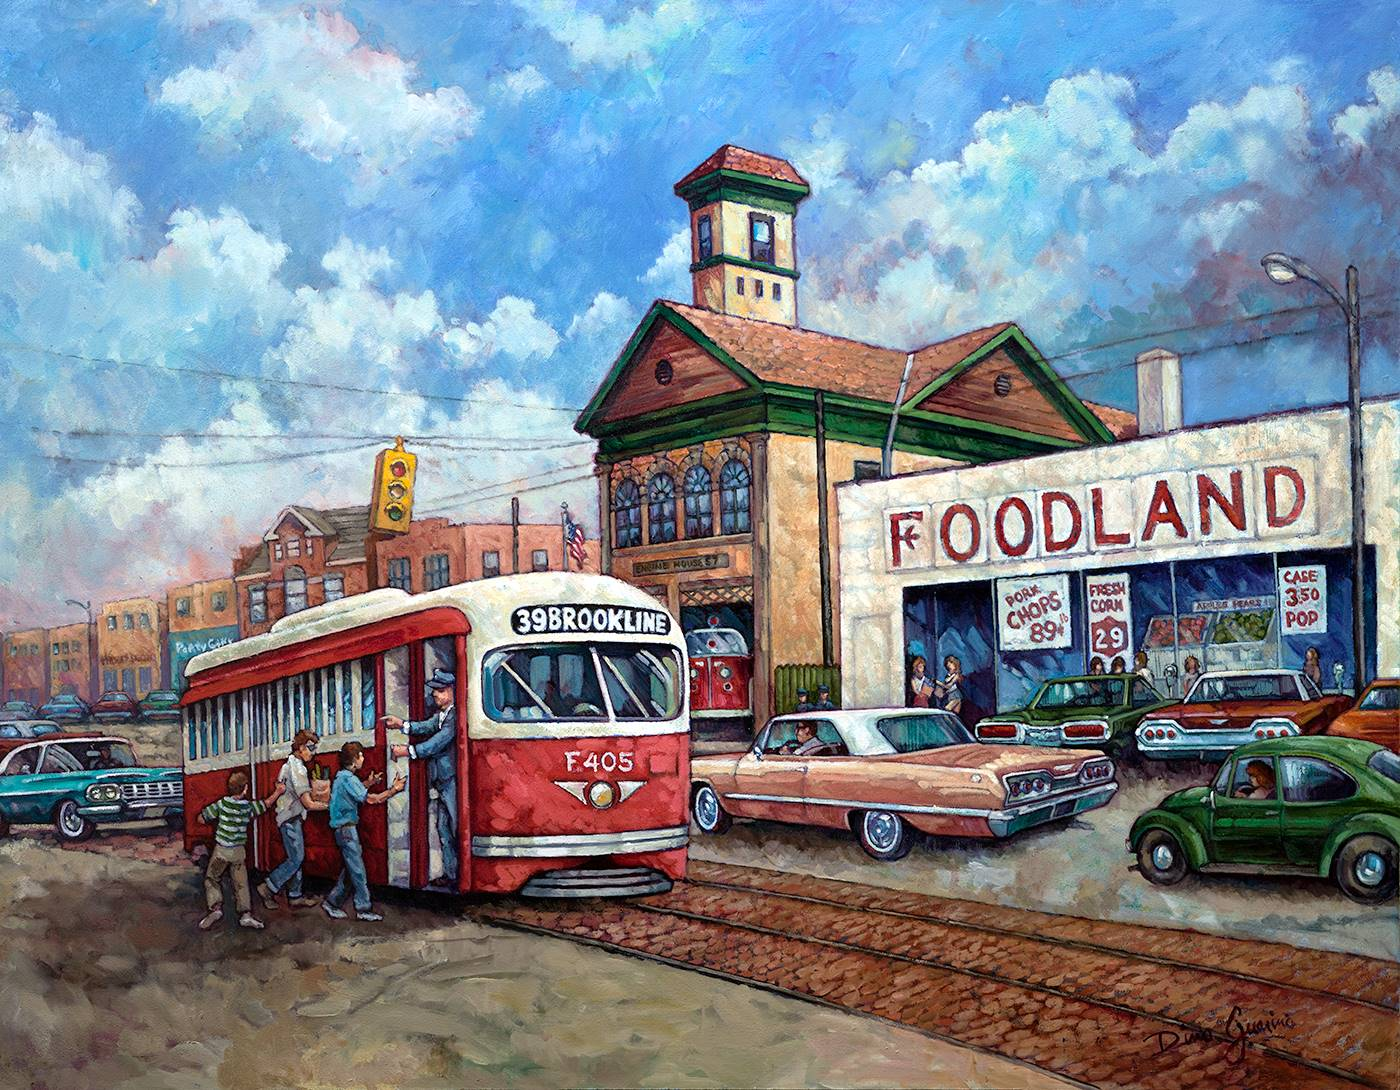 This is a painting done by renowned Brookline artist